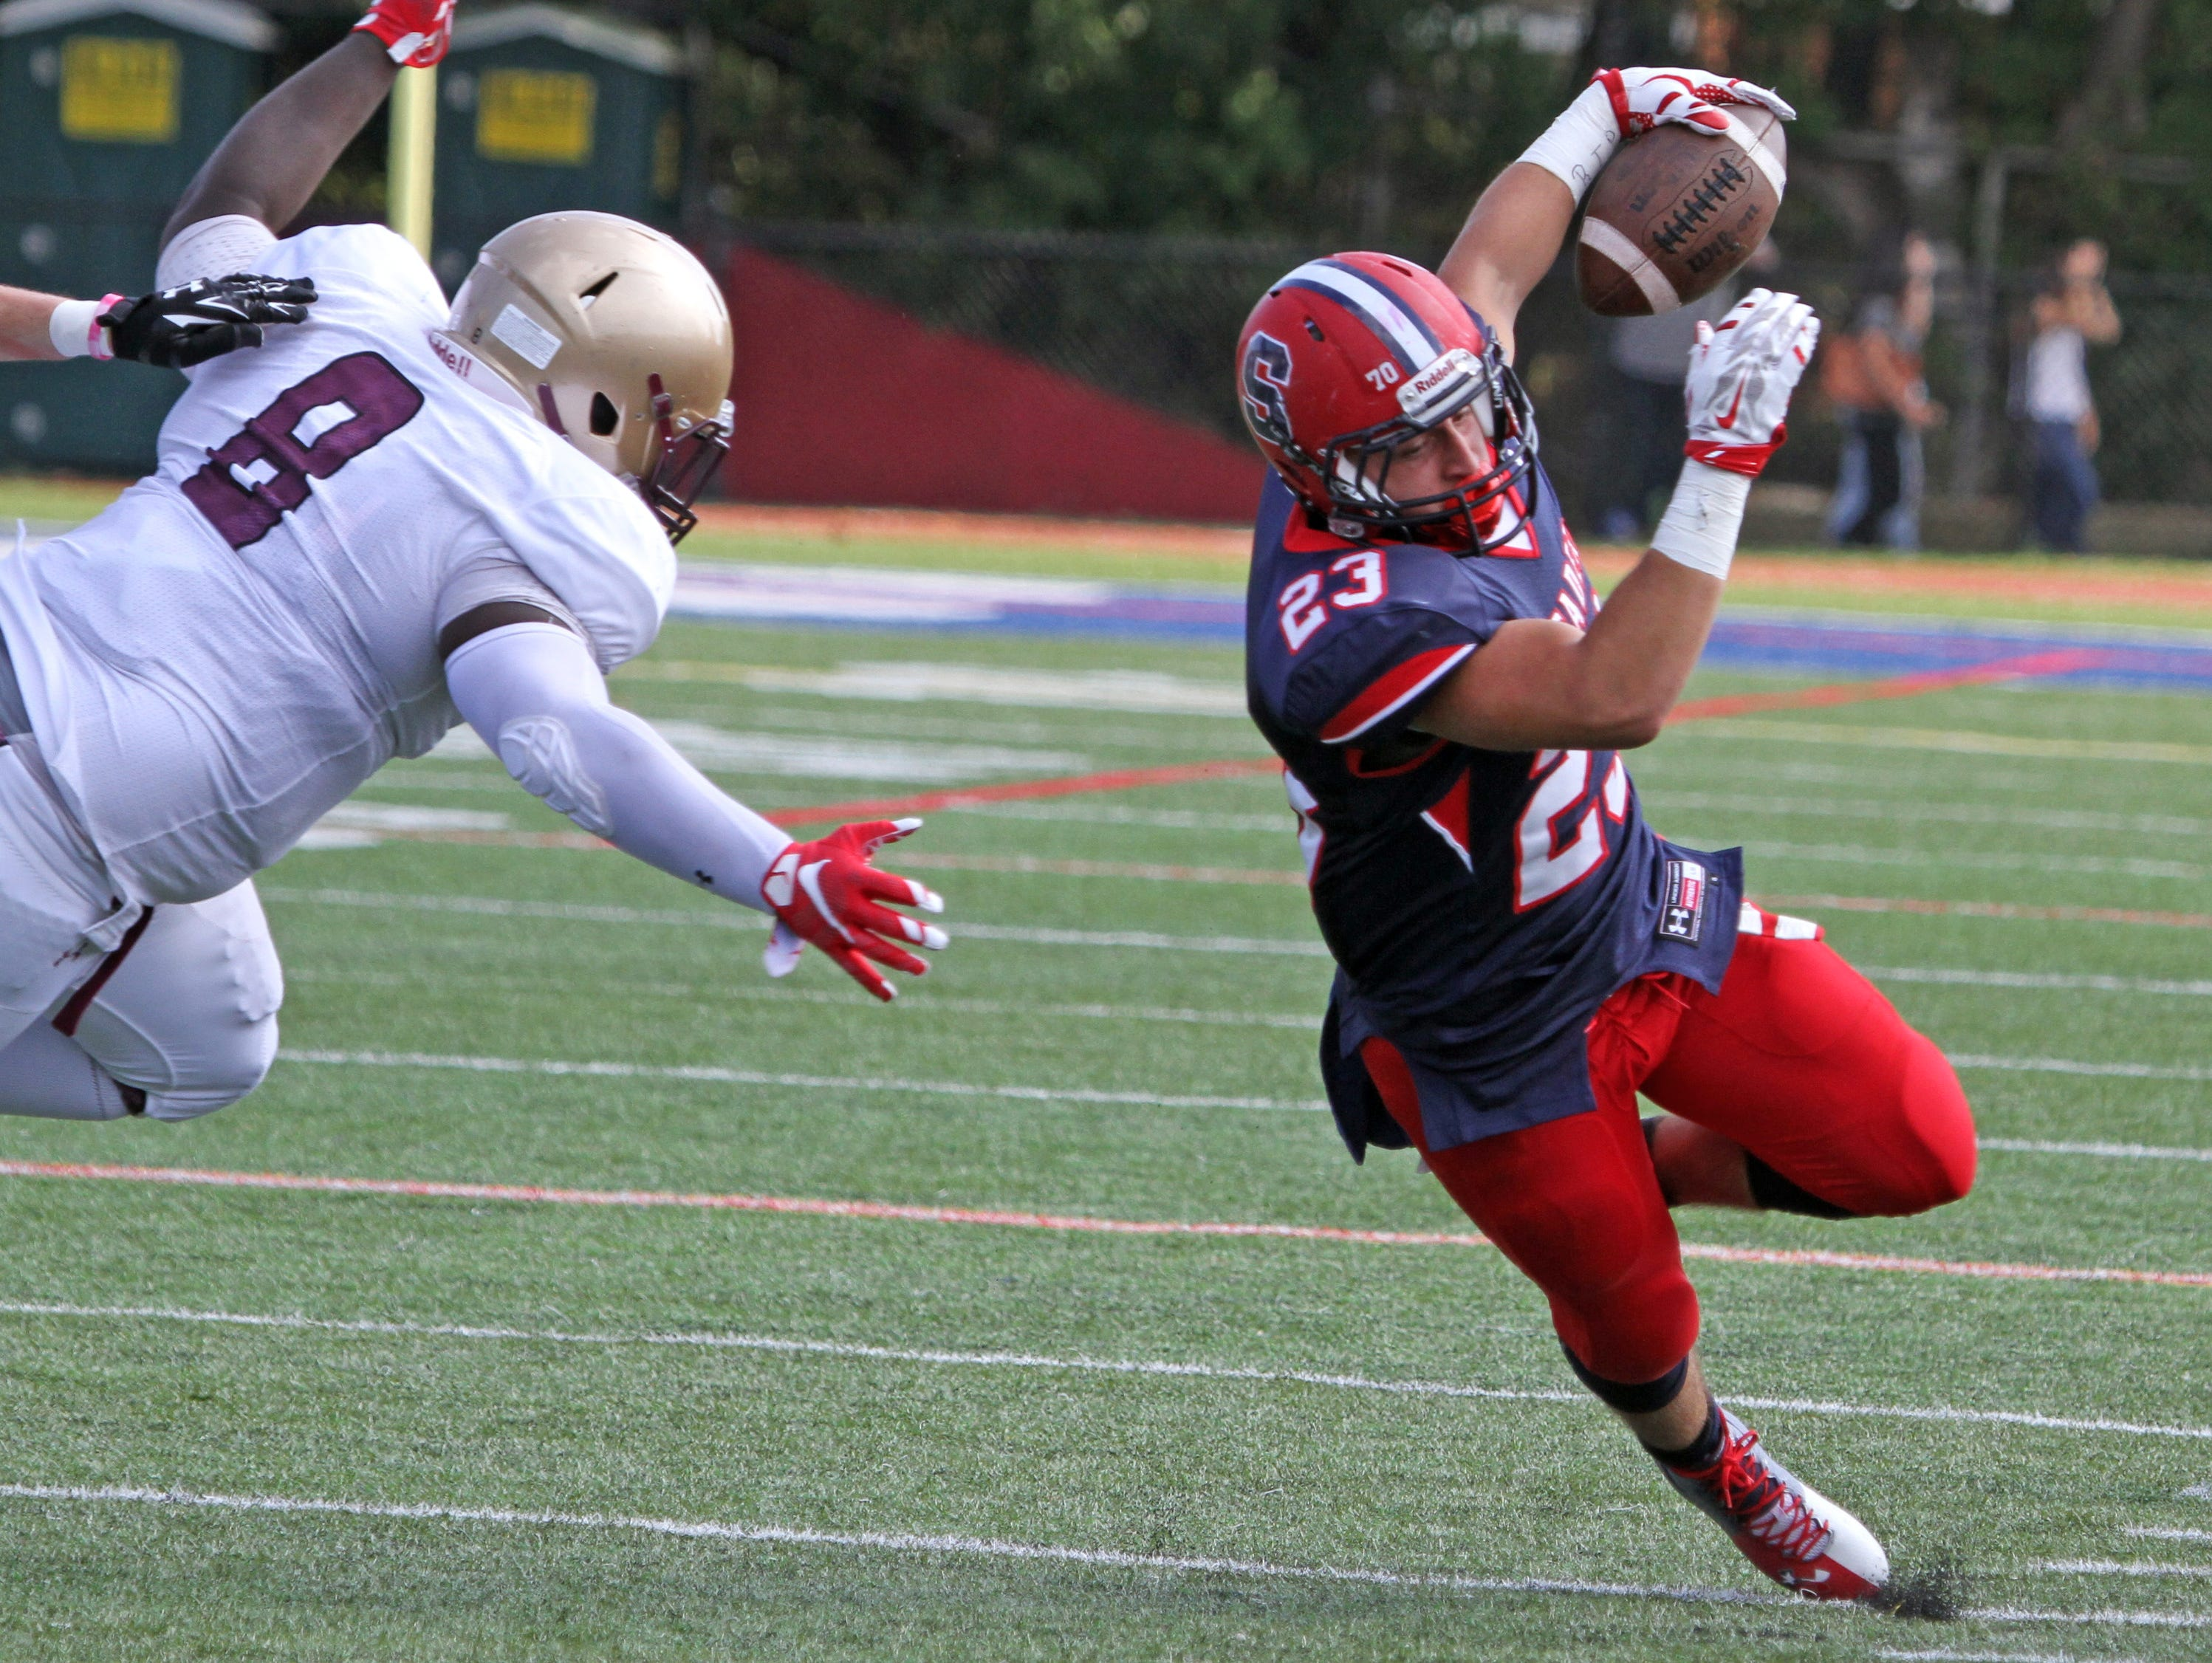 Stepinac's Antonio Giannico tries to evade Iona Prep's Darail McCormick during a varsity football game at Stepinac High School Sept. 19, 2015. Stepinac crushed Iona Prep 48-6.